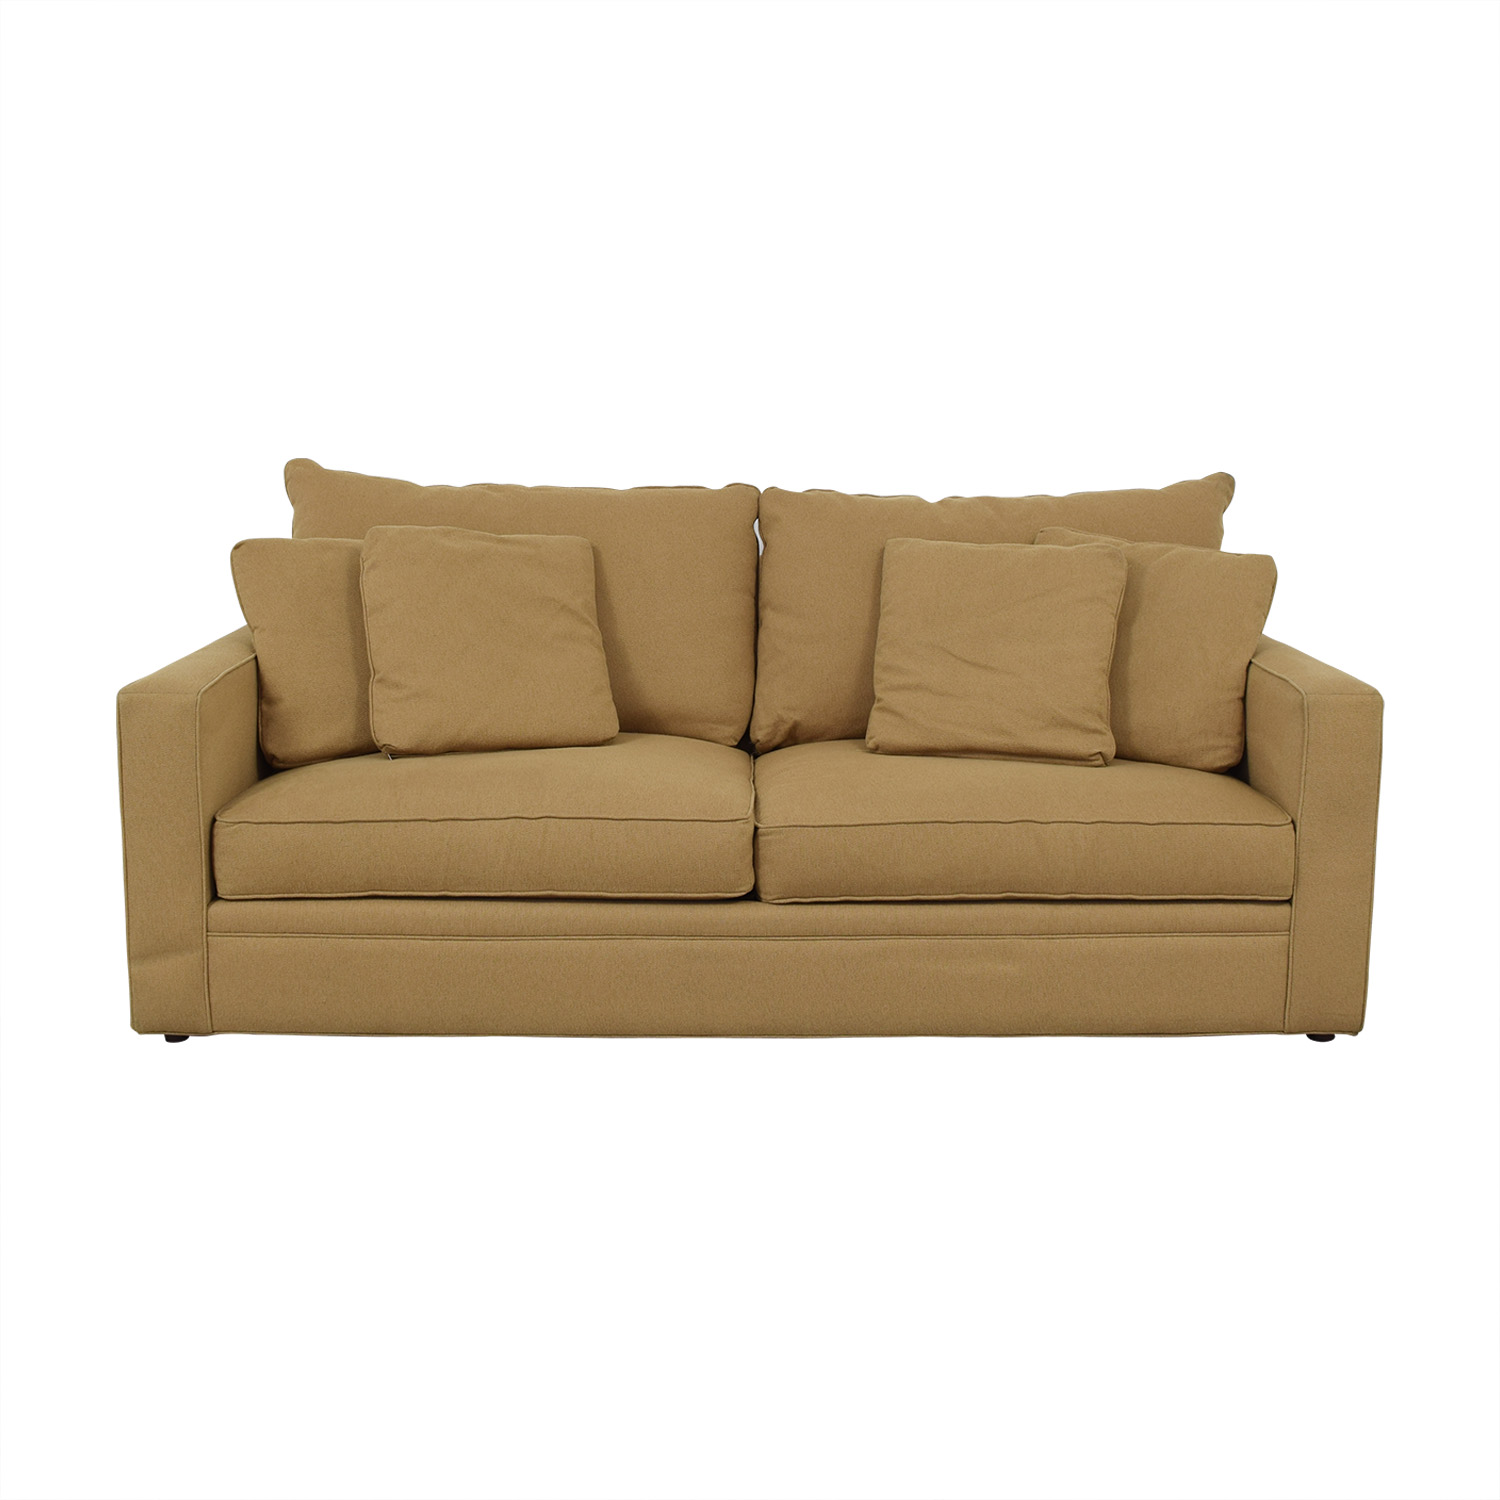 shop Room & Board Room & Board Orson Custom Sofa online